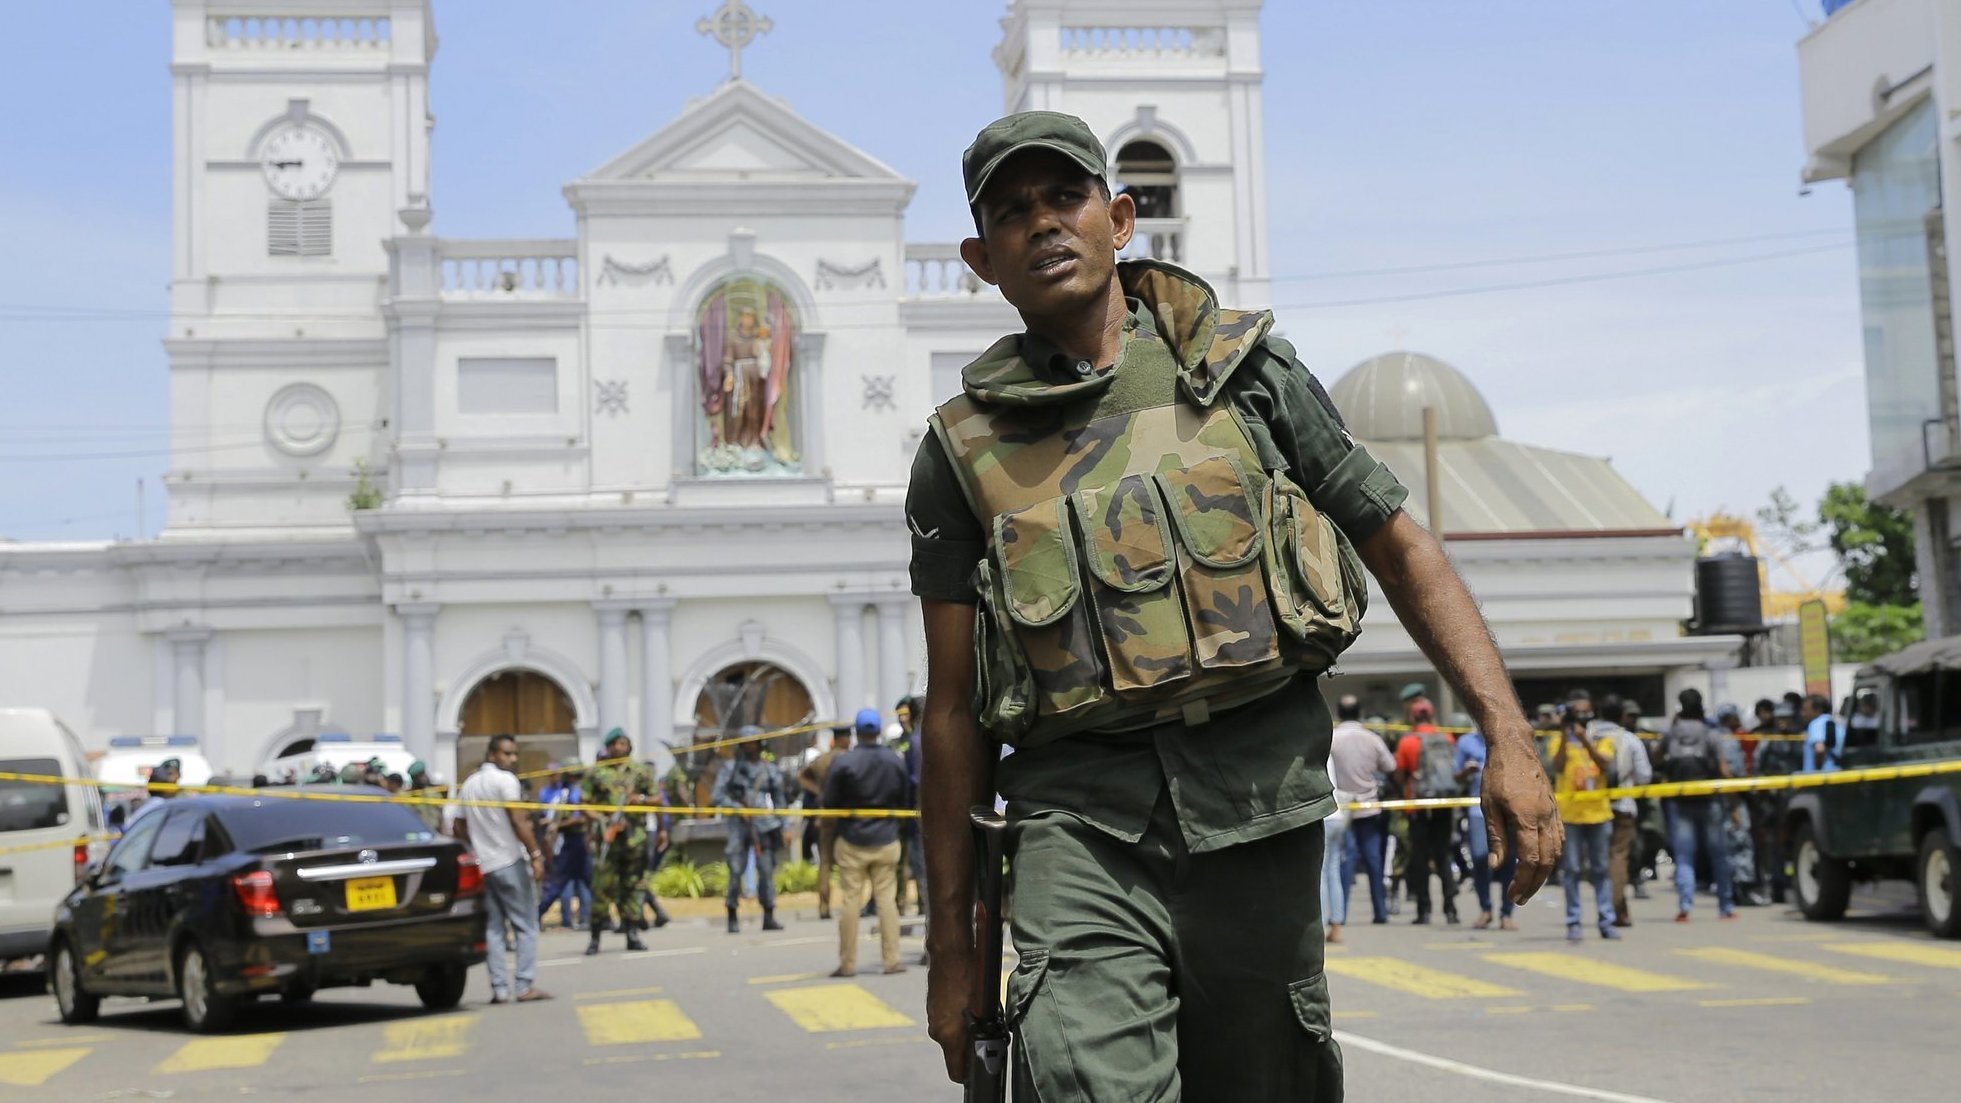 npr.org - Sri Lanka Explosions Target Churches and Hotels, Killing At Least 129